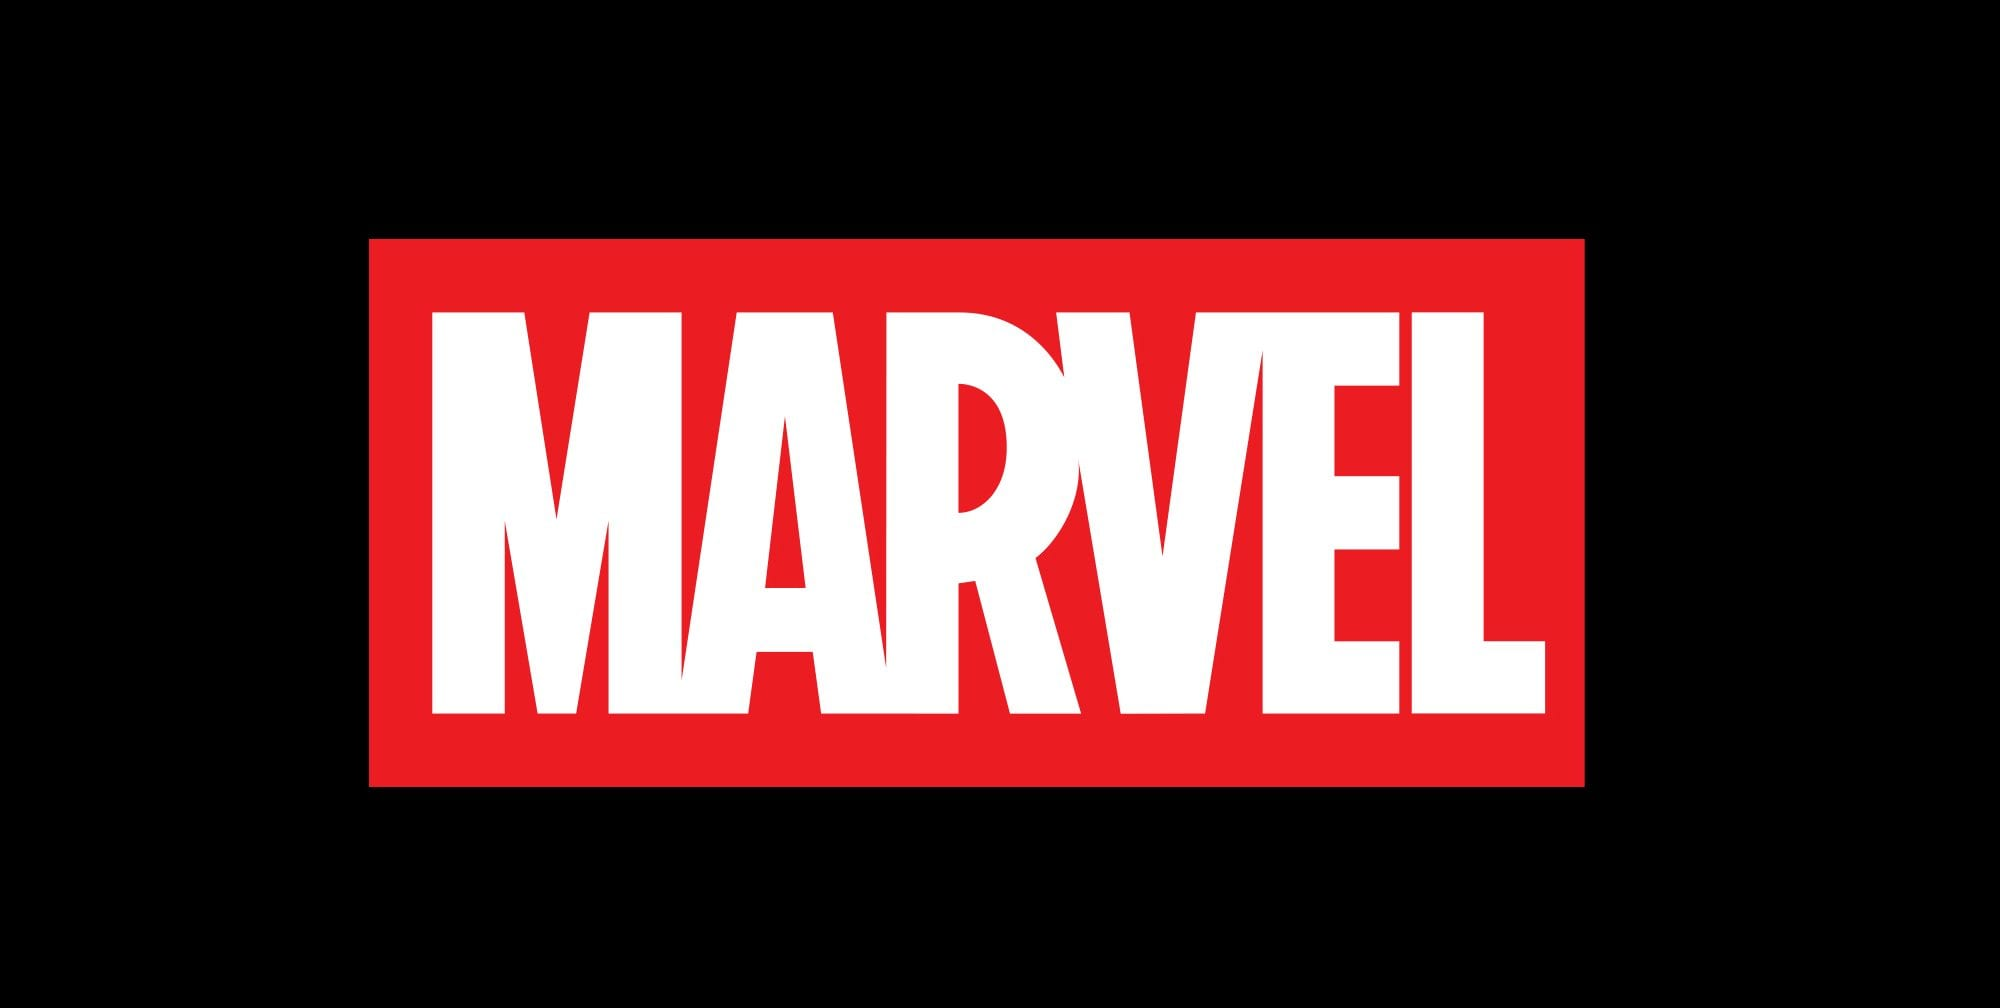 It's possible to argue that Marvel's still got an entire universe of exciting new characters to hone in on or that there are still many ways for the mega-conglomerate to keep milking that cash cow. Either way, here are the best superheroes Marvel has not yet introduced to its cinematic universe.